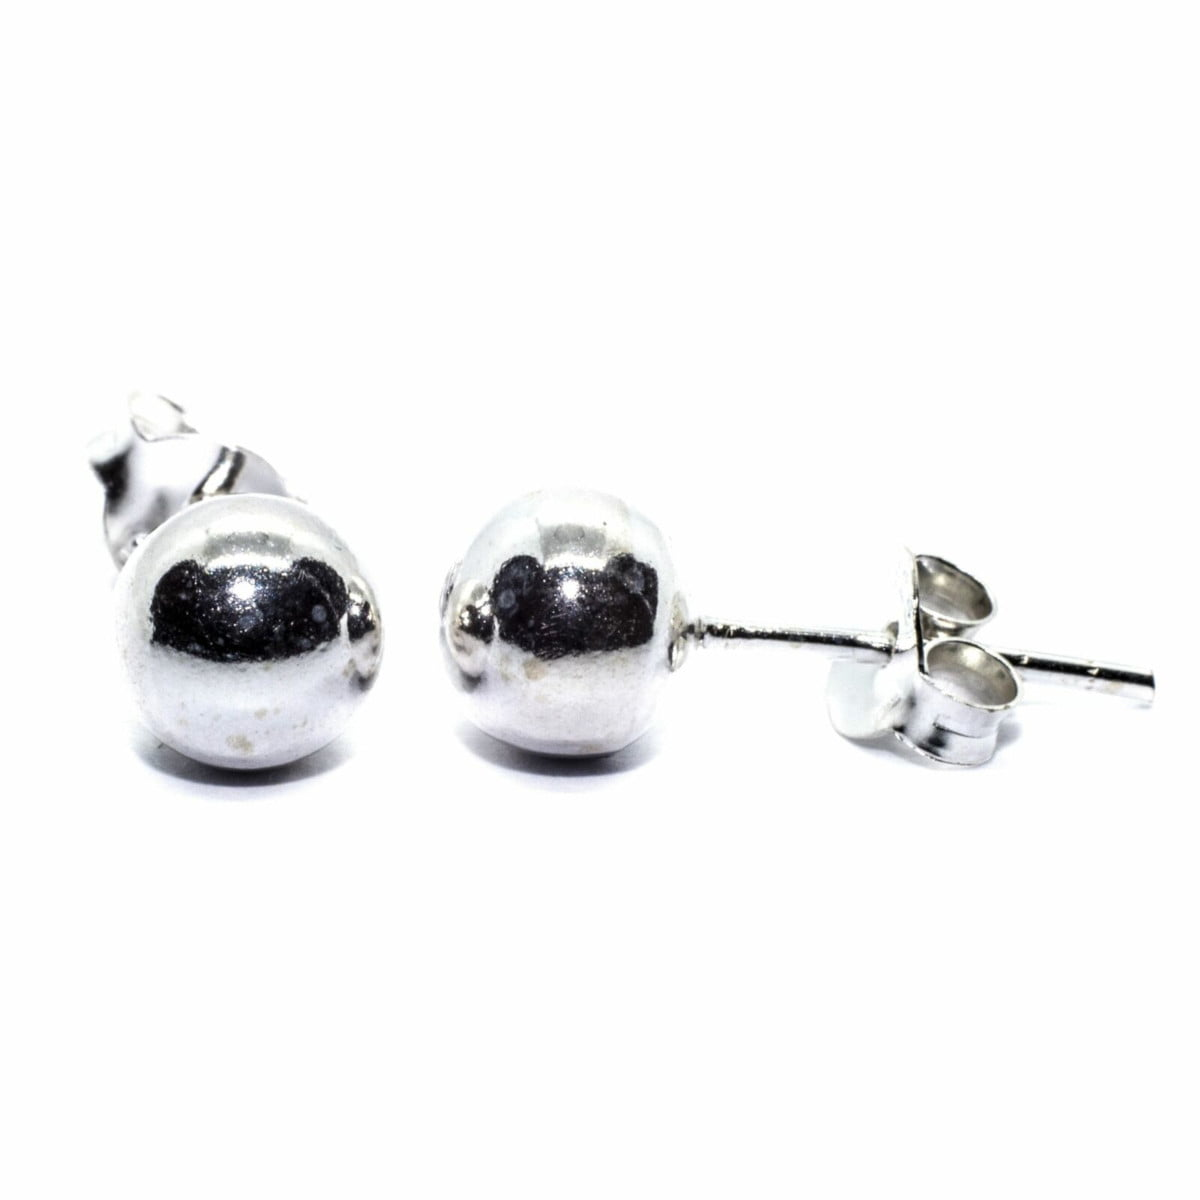 6 mm ball stud earrings in sterling silver